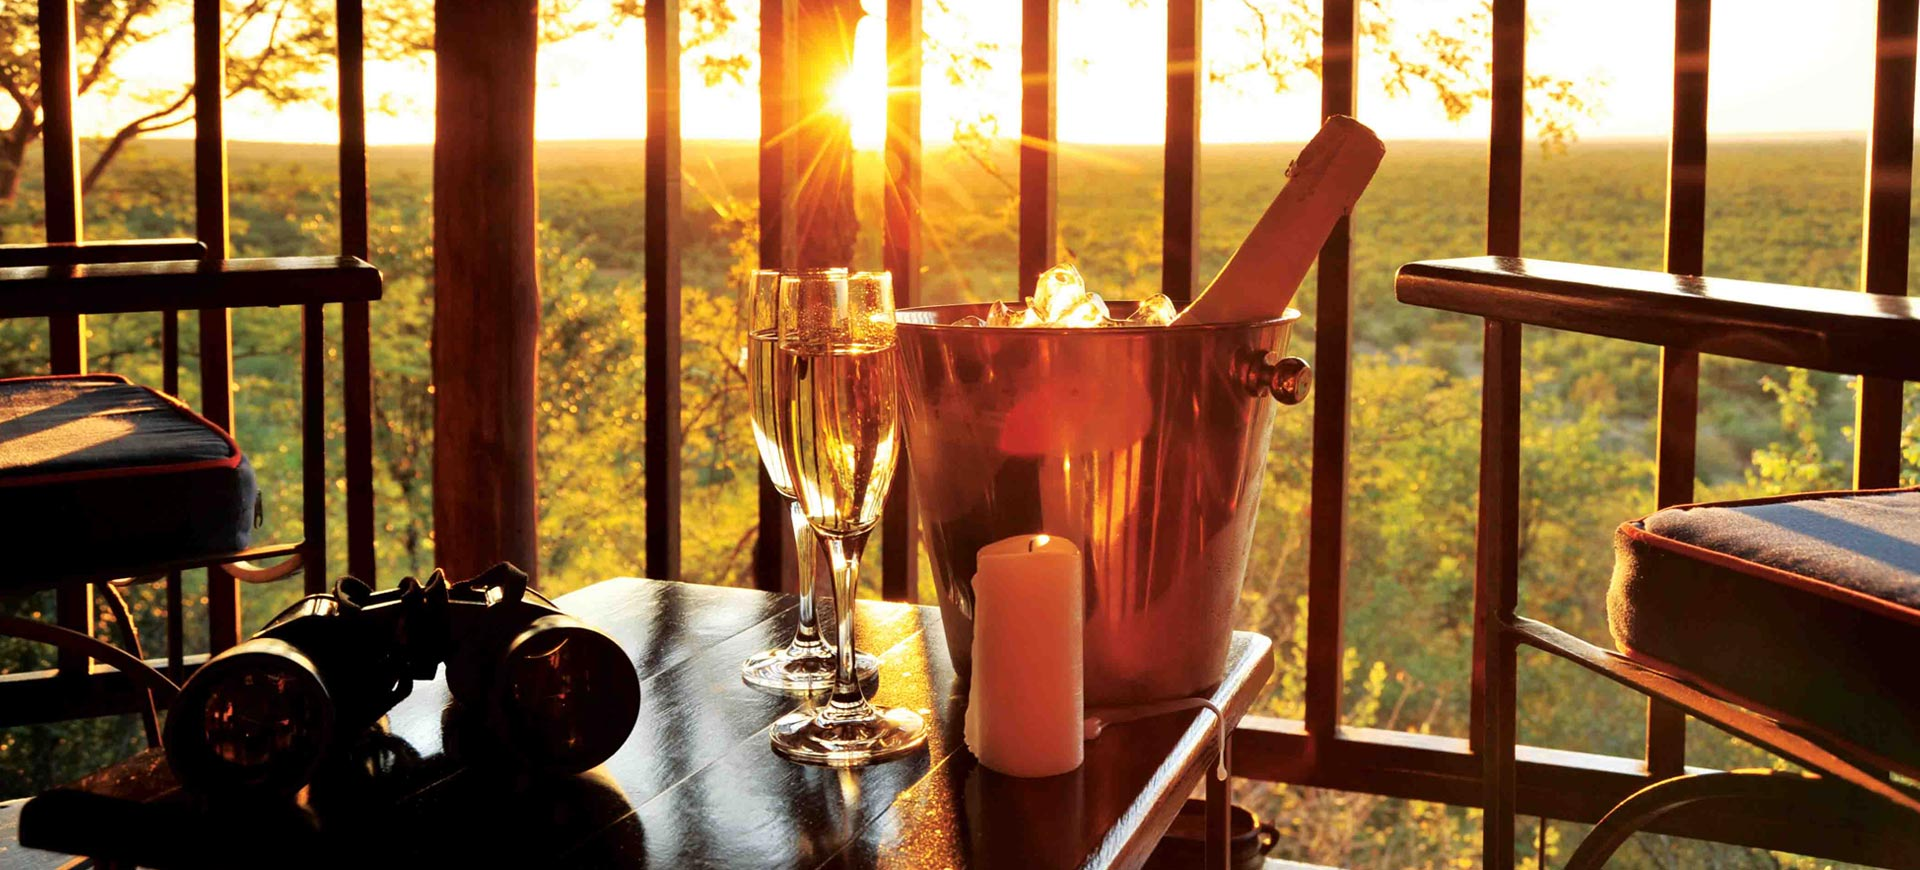 Safari Lodges Victoria Falls